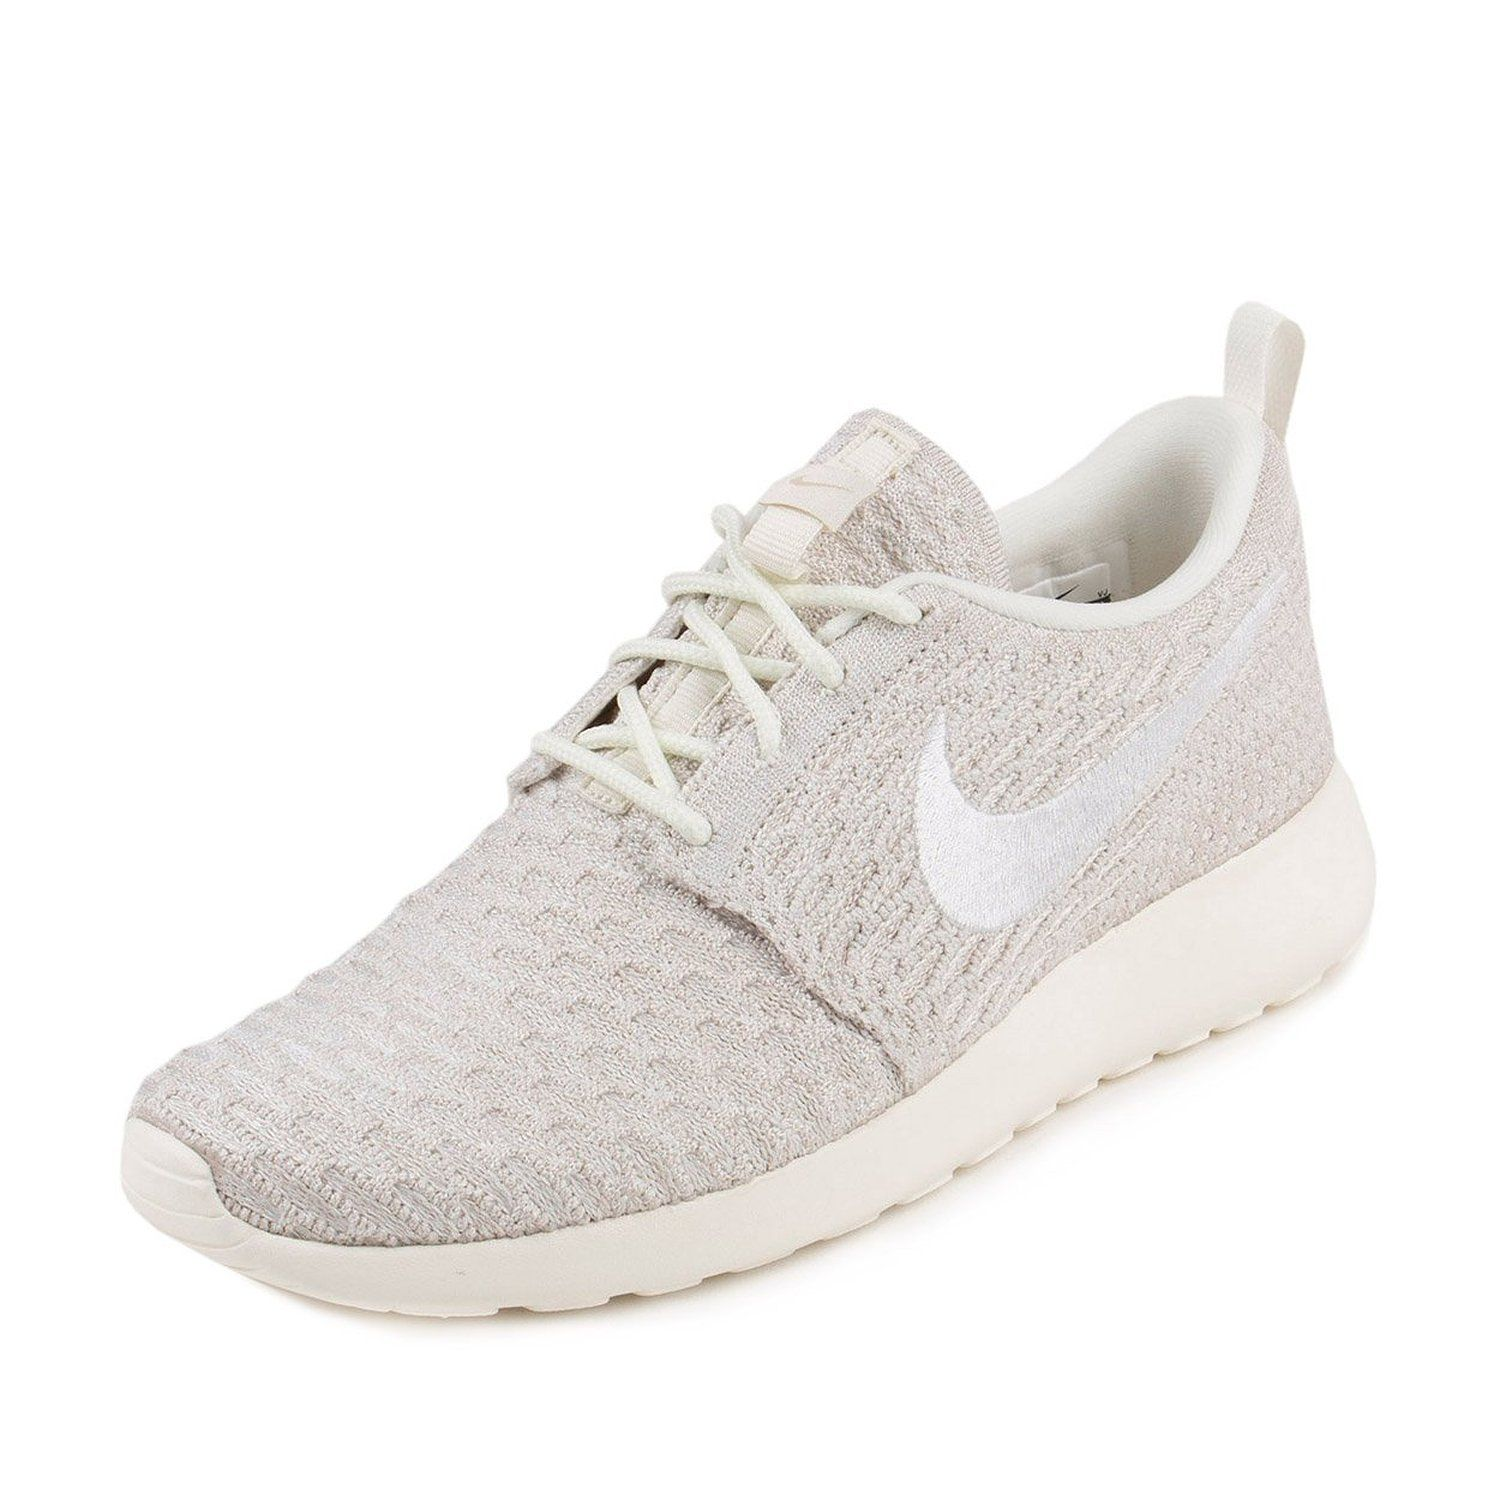 size 40 d61ea 17b2e Nike Womens WMNS Roshe One Flyknit Sail White-String Fabric   Amazon.com